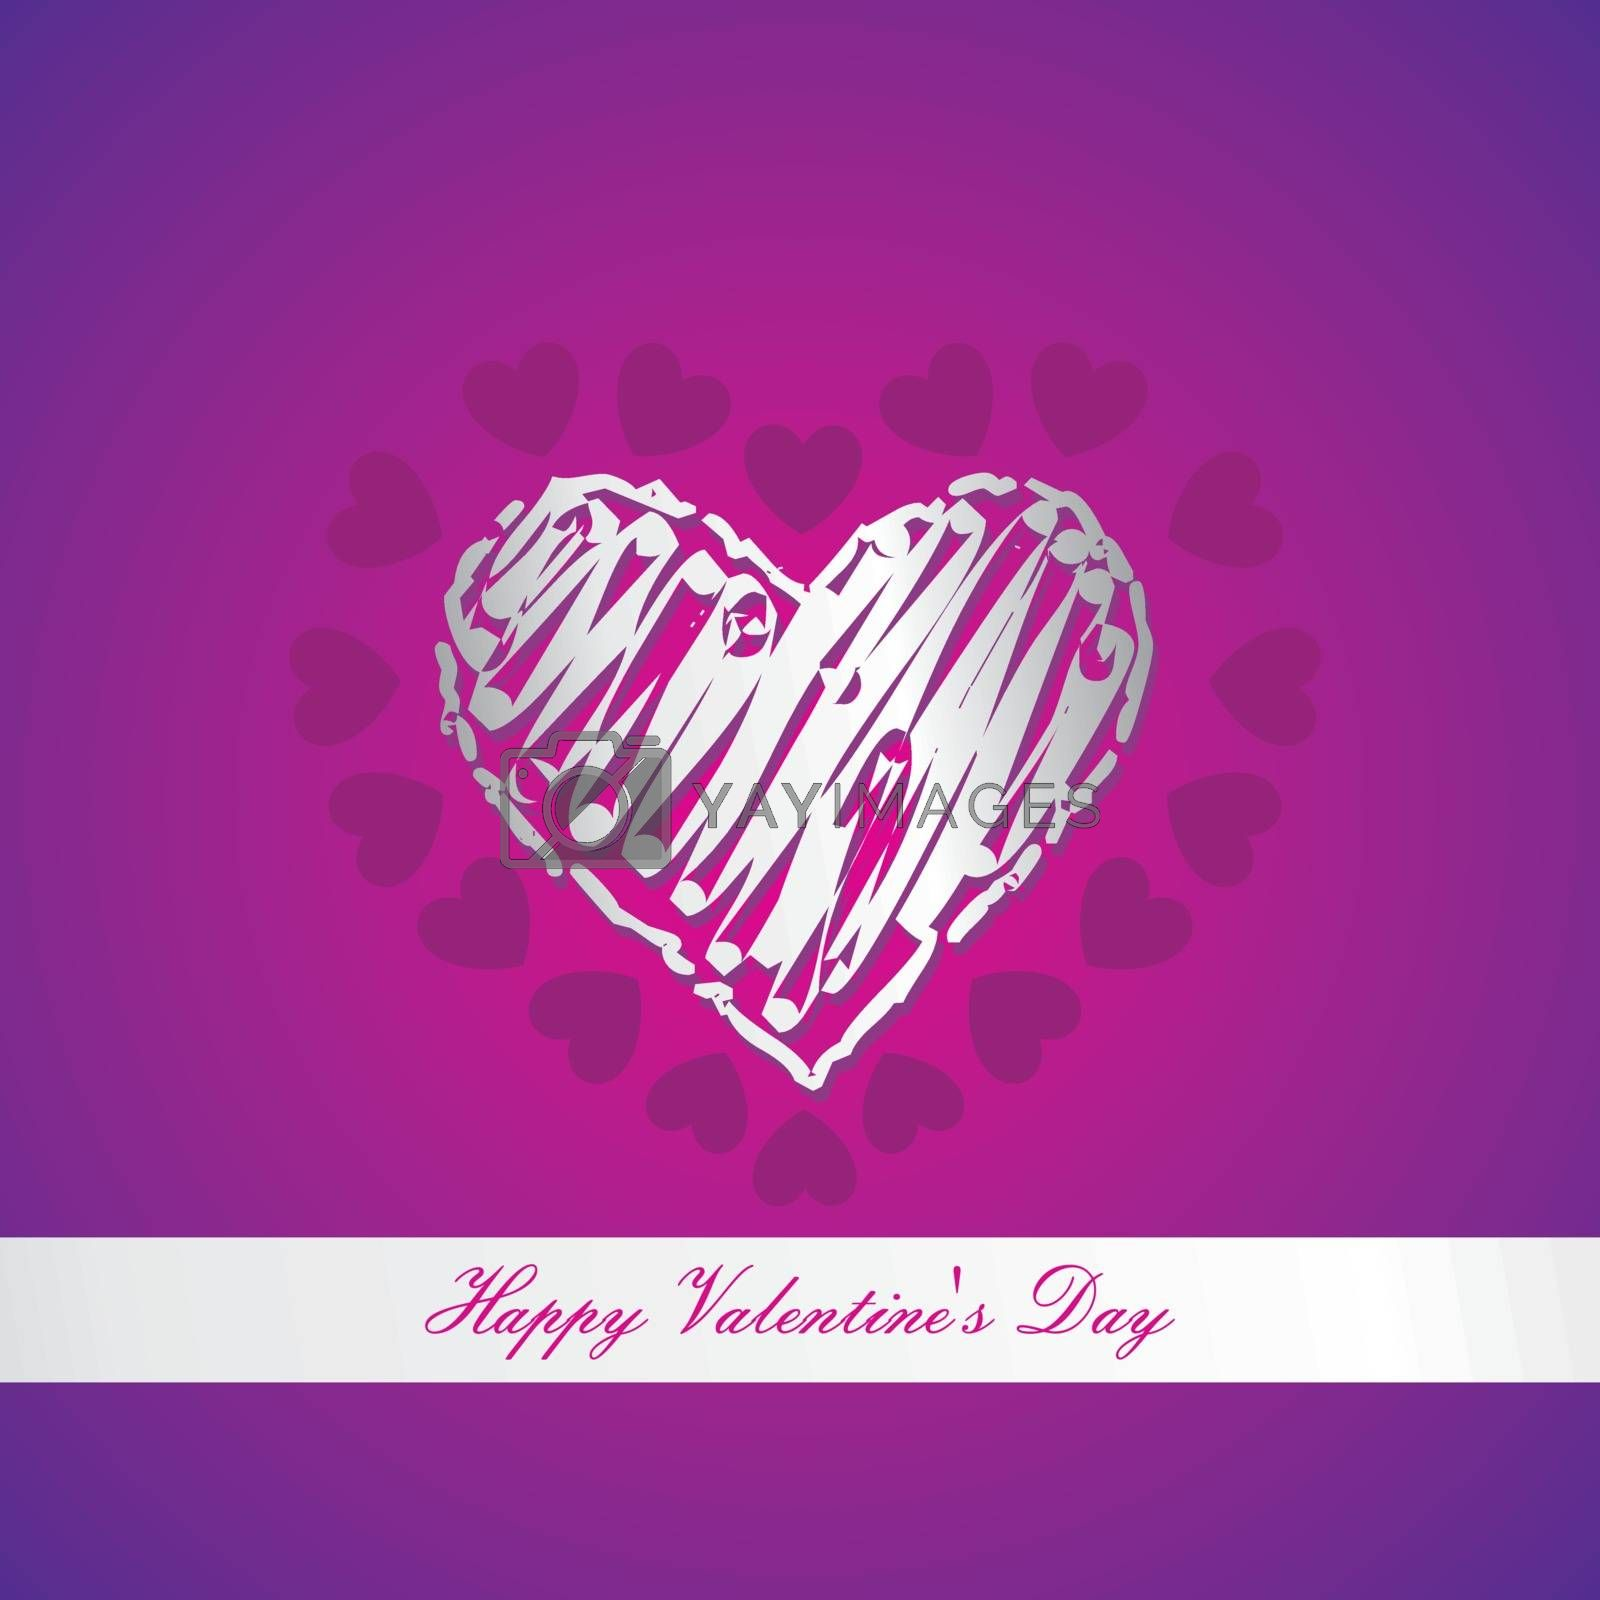 Valentine's Day,on February 14 each year, associated with romantic love